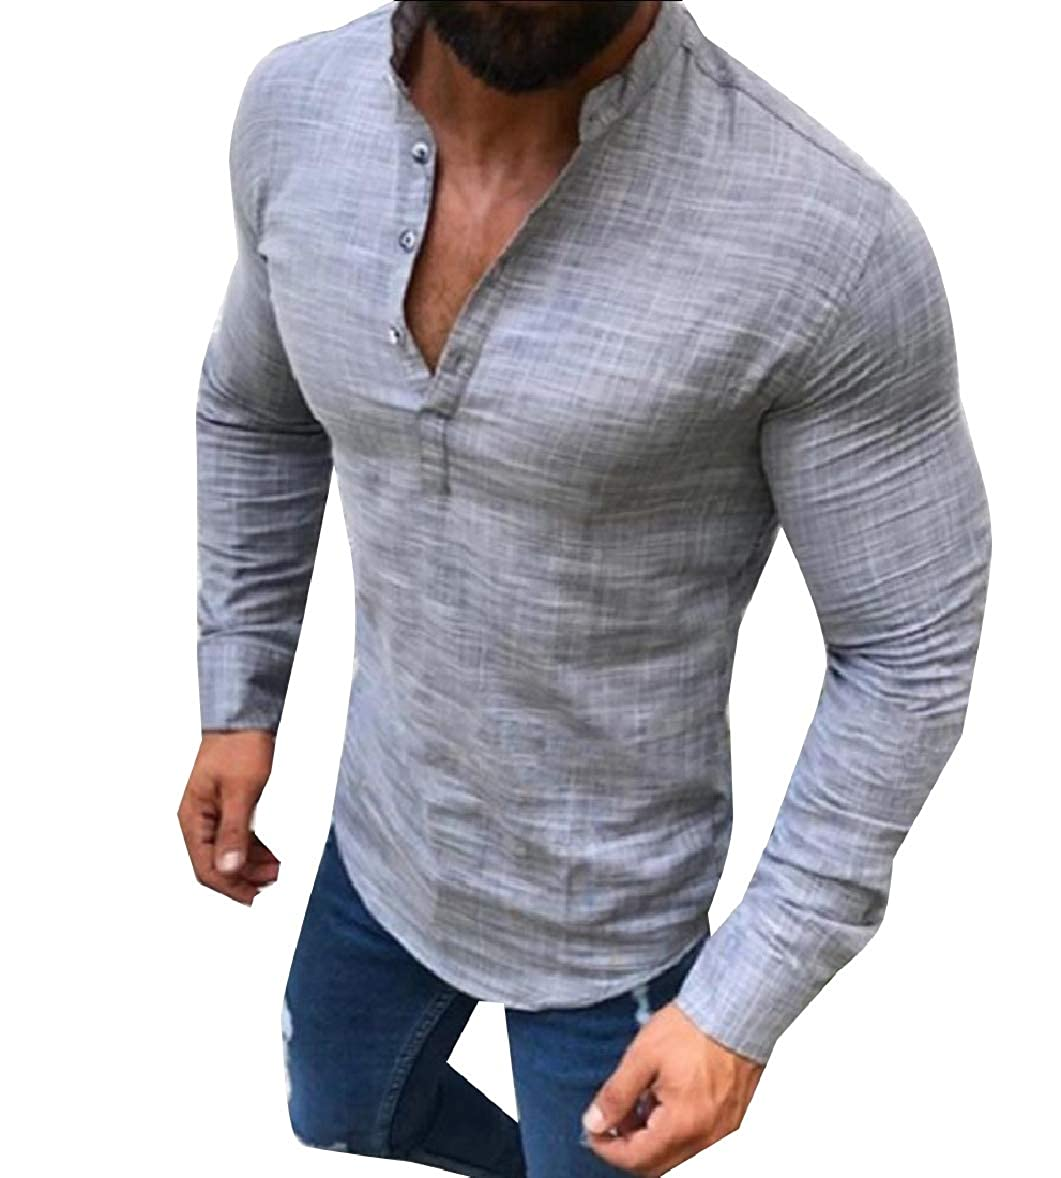 Tootless-Men Button Casual Pure Color Linen Ethnic Style Shirt Blouse Tops